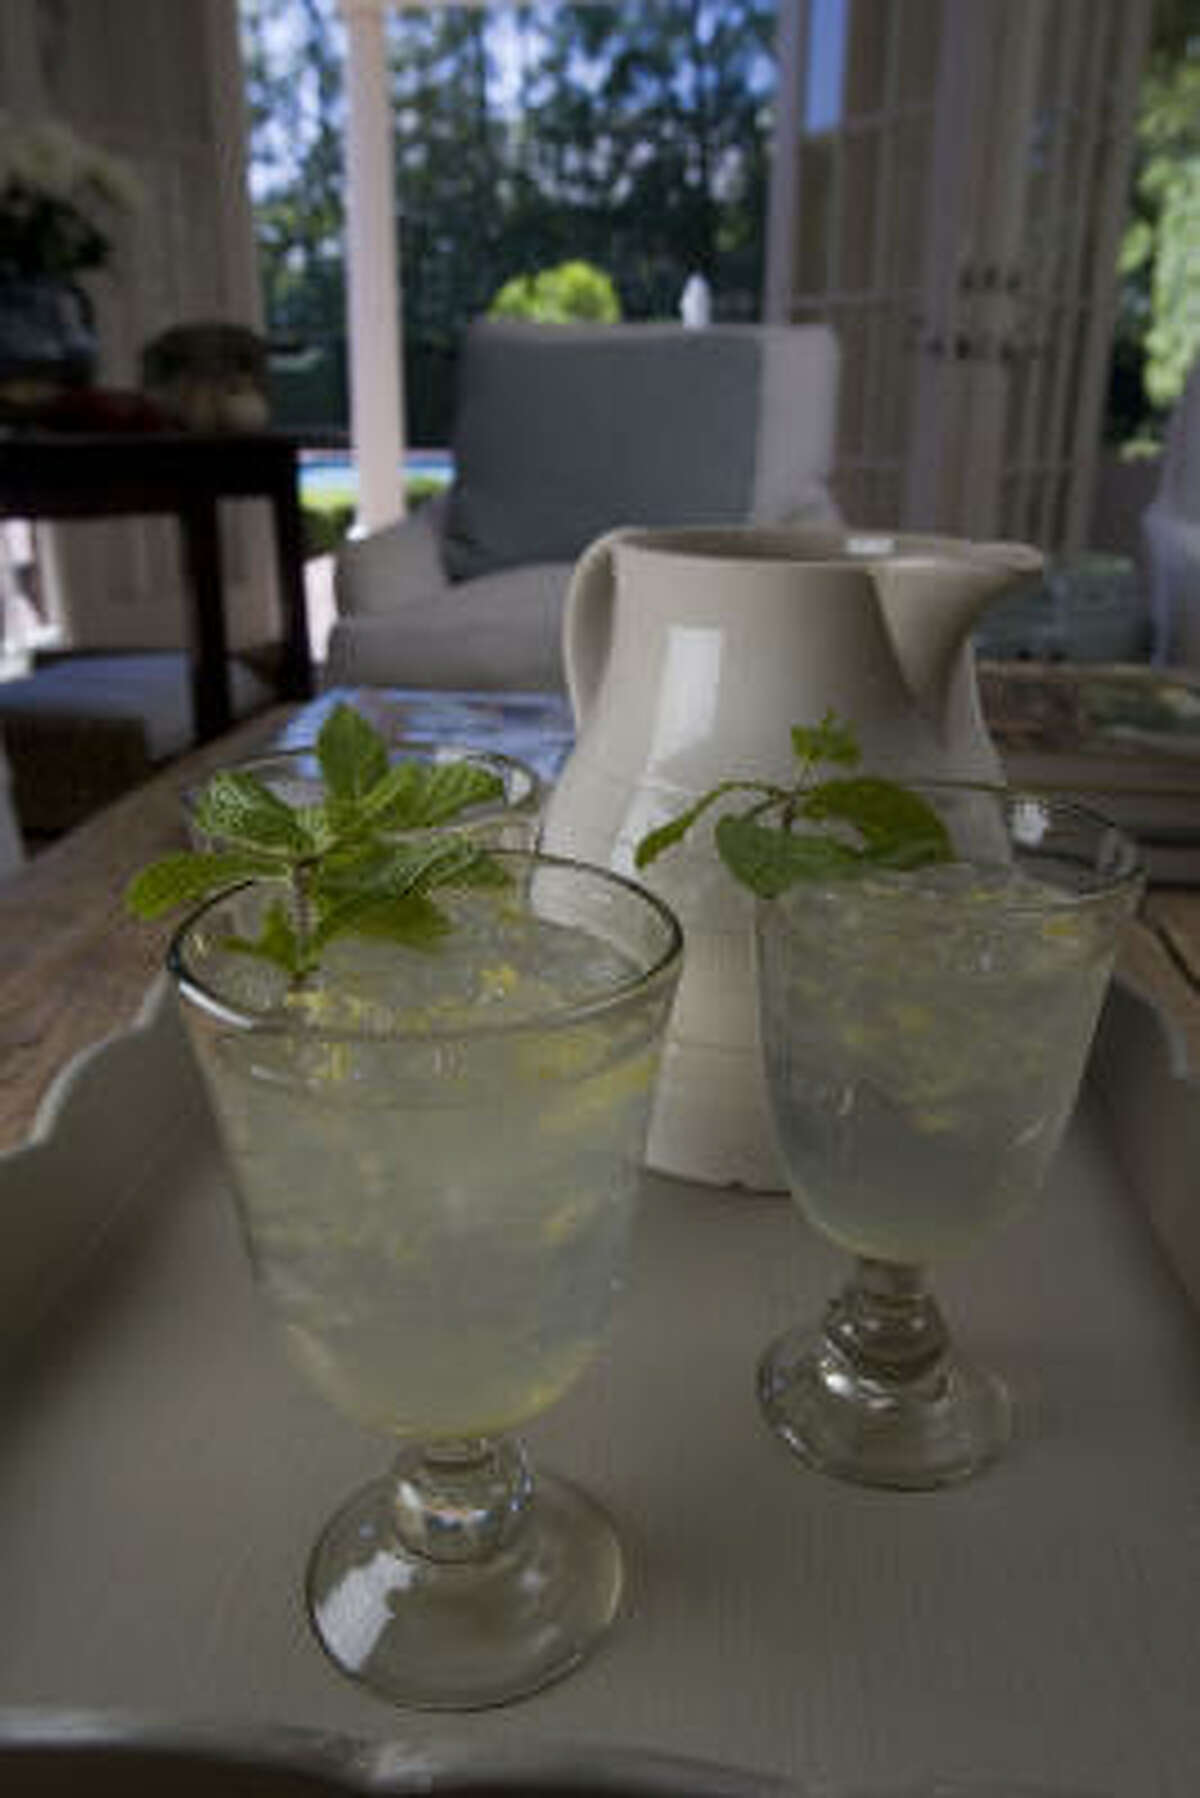 She also and fixes Iced Lemon and Ginger Summer Cordials.